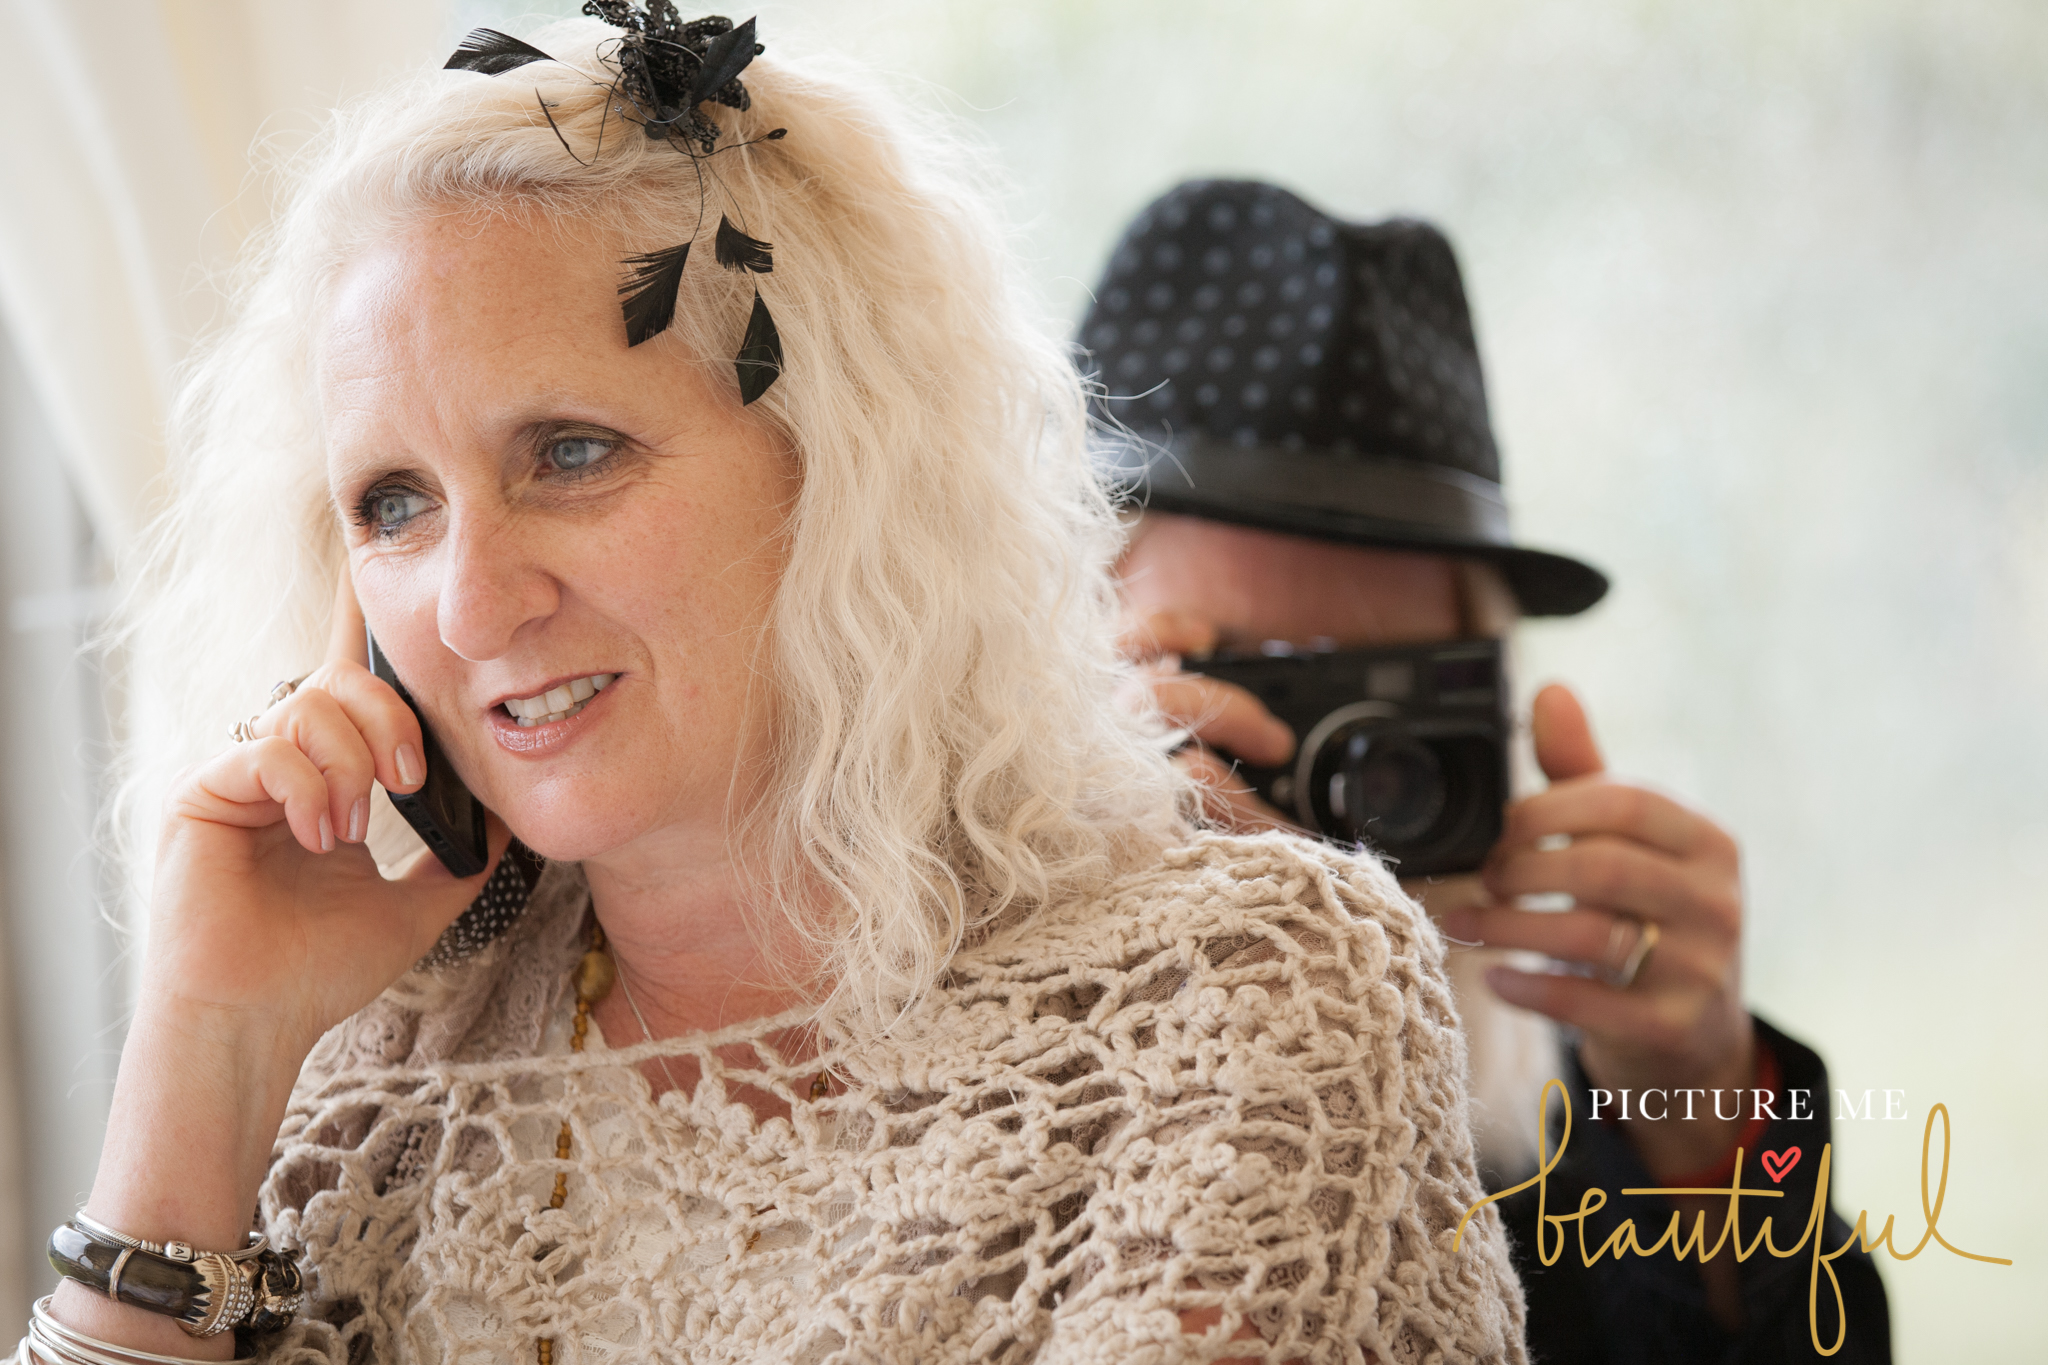 Picture Me Beautiful Wedding & Portrait Photography